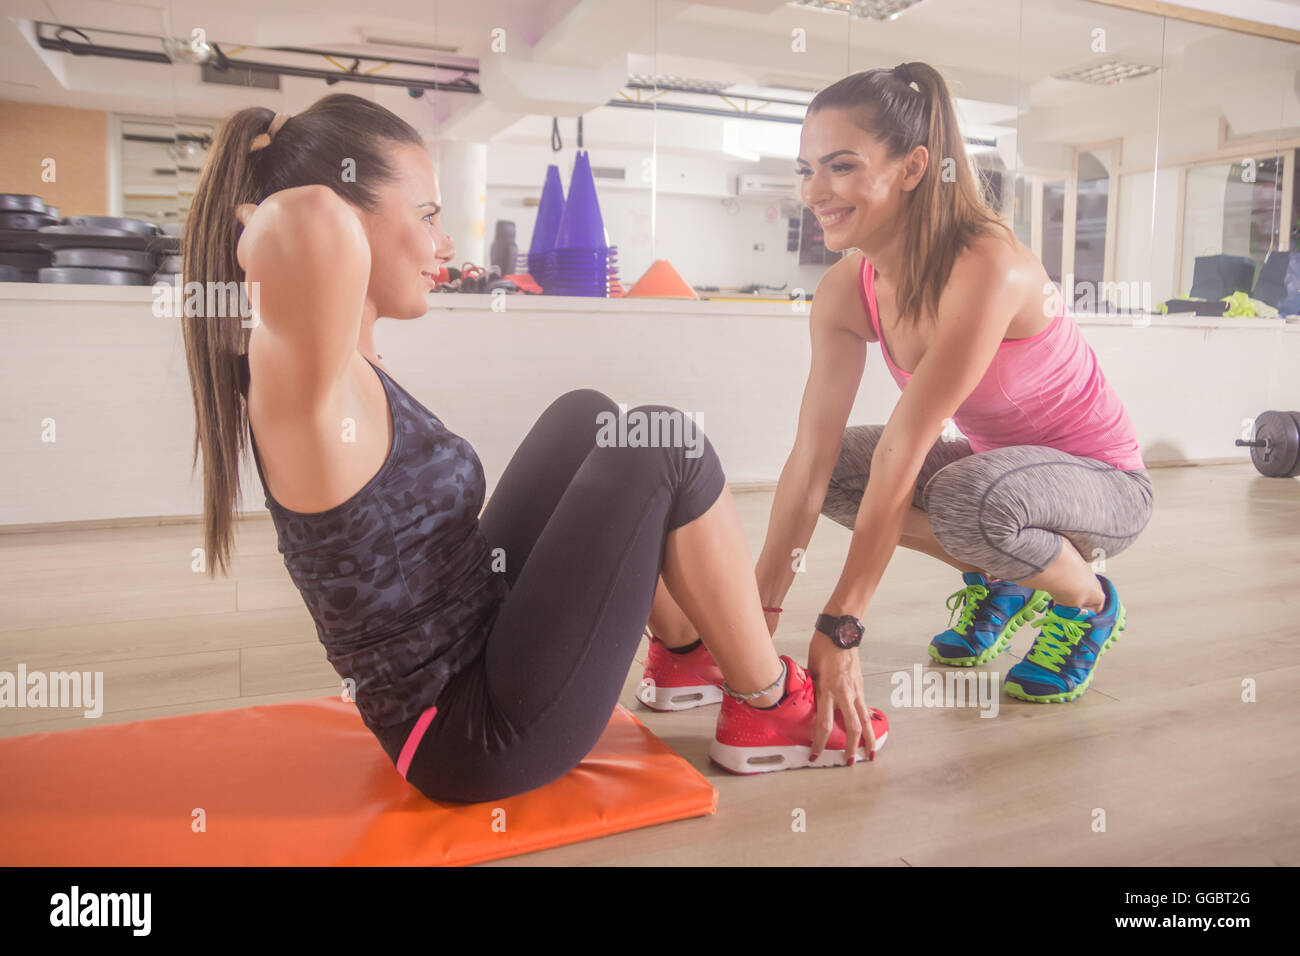 Two Women Training Instructor Abs Workout Gym